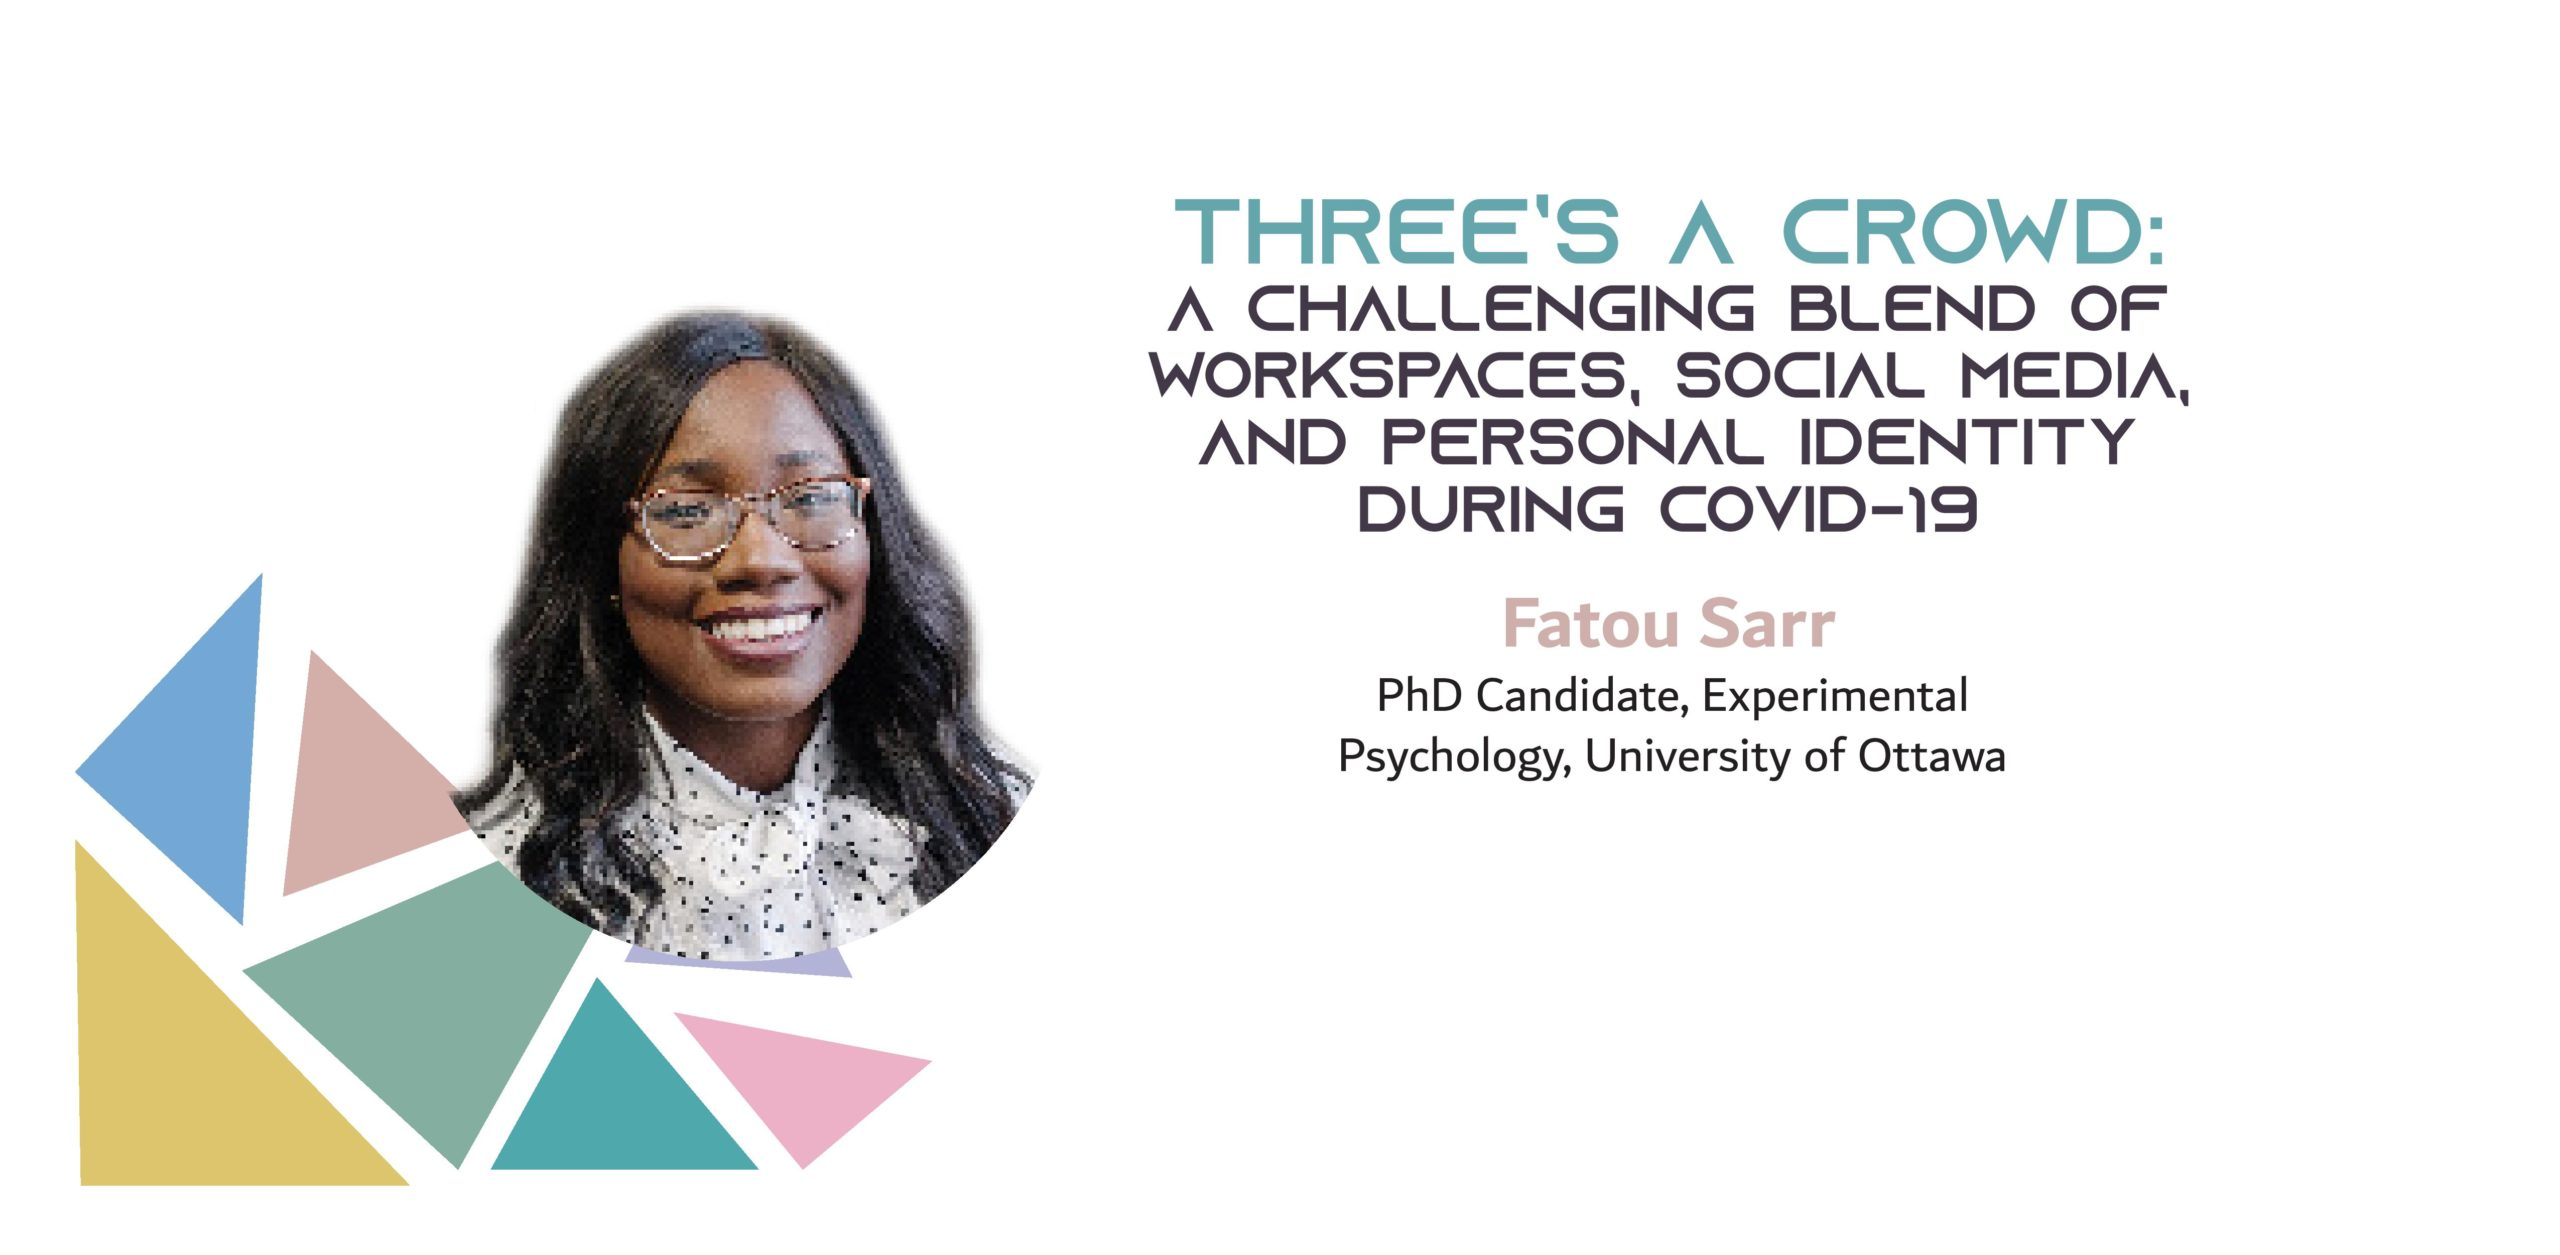 """Picture of a black woman on a background with colored triangles. The text reads: """"Three's a crowd: A challenging blend of workspaces, social media, and personal identity during COVID-19. Fatou Sarr, PhD Canddiate, Experimental Psychology, University of Ottawa"""""""